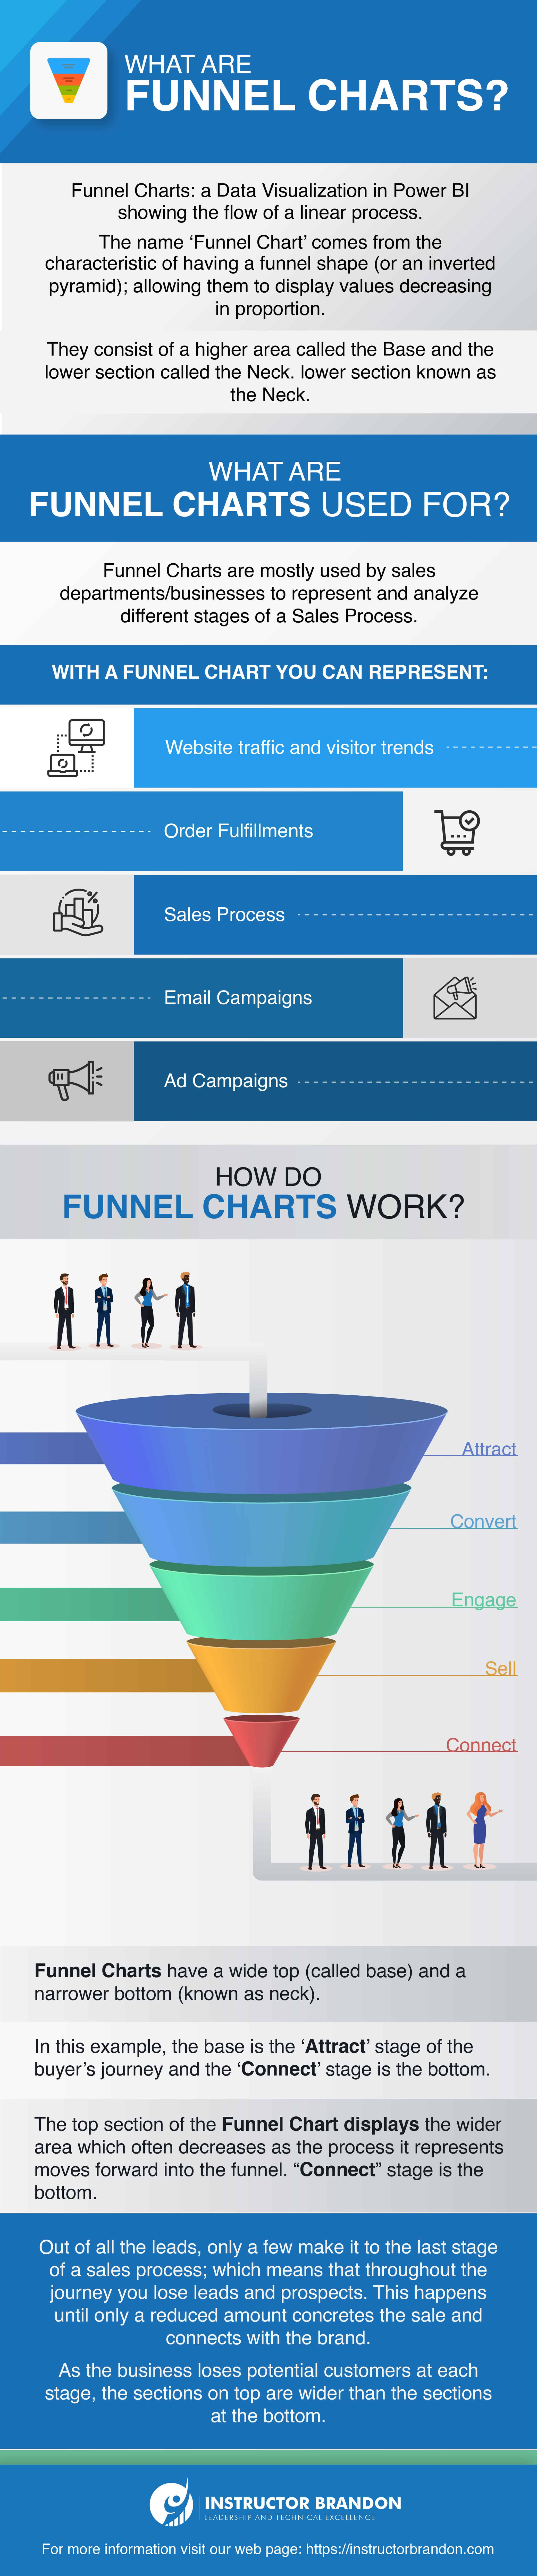 Power BI Data Visualization Practices Part 10 of 15: Funnel Charts